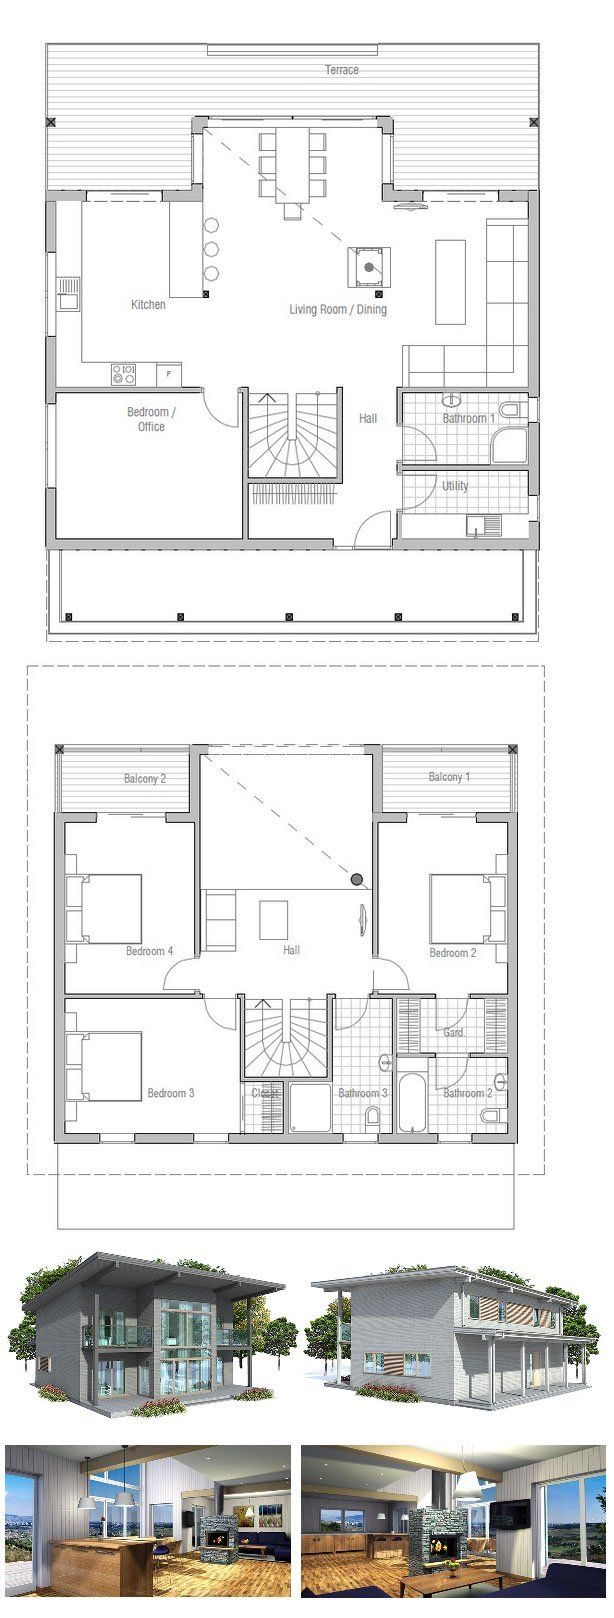 Small house plan with small building area. Balconies on the ... on mansion balcony, dormer balcony, house plans pdf, house plans 1500 to 1800, house plans from movies, italian balcony, house plans for 2015, house plans 4 bedrooms, house plans patio, house plans colonial style homes, house plans vaulted ceilings, house plans storage, house plans bathroom, house plans on pilings, house plans open floor plan, house plans second floor balcony, house plans for entertaining, london balcony, beach house balcony, log cabin plans with balcony,